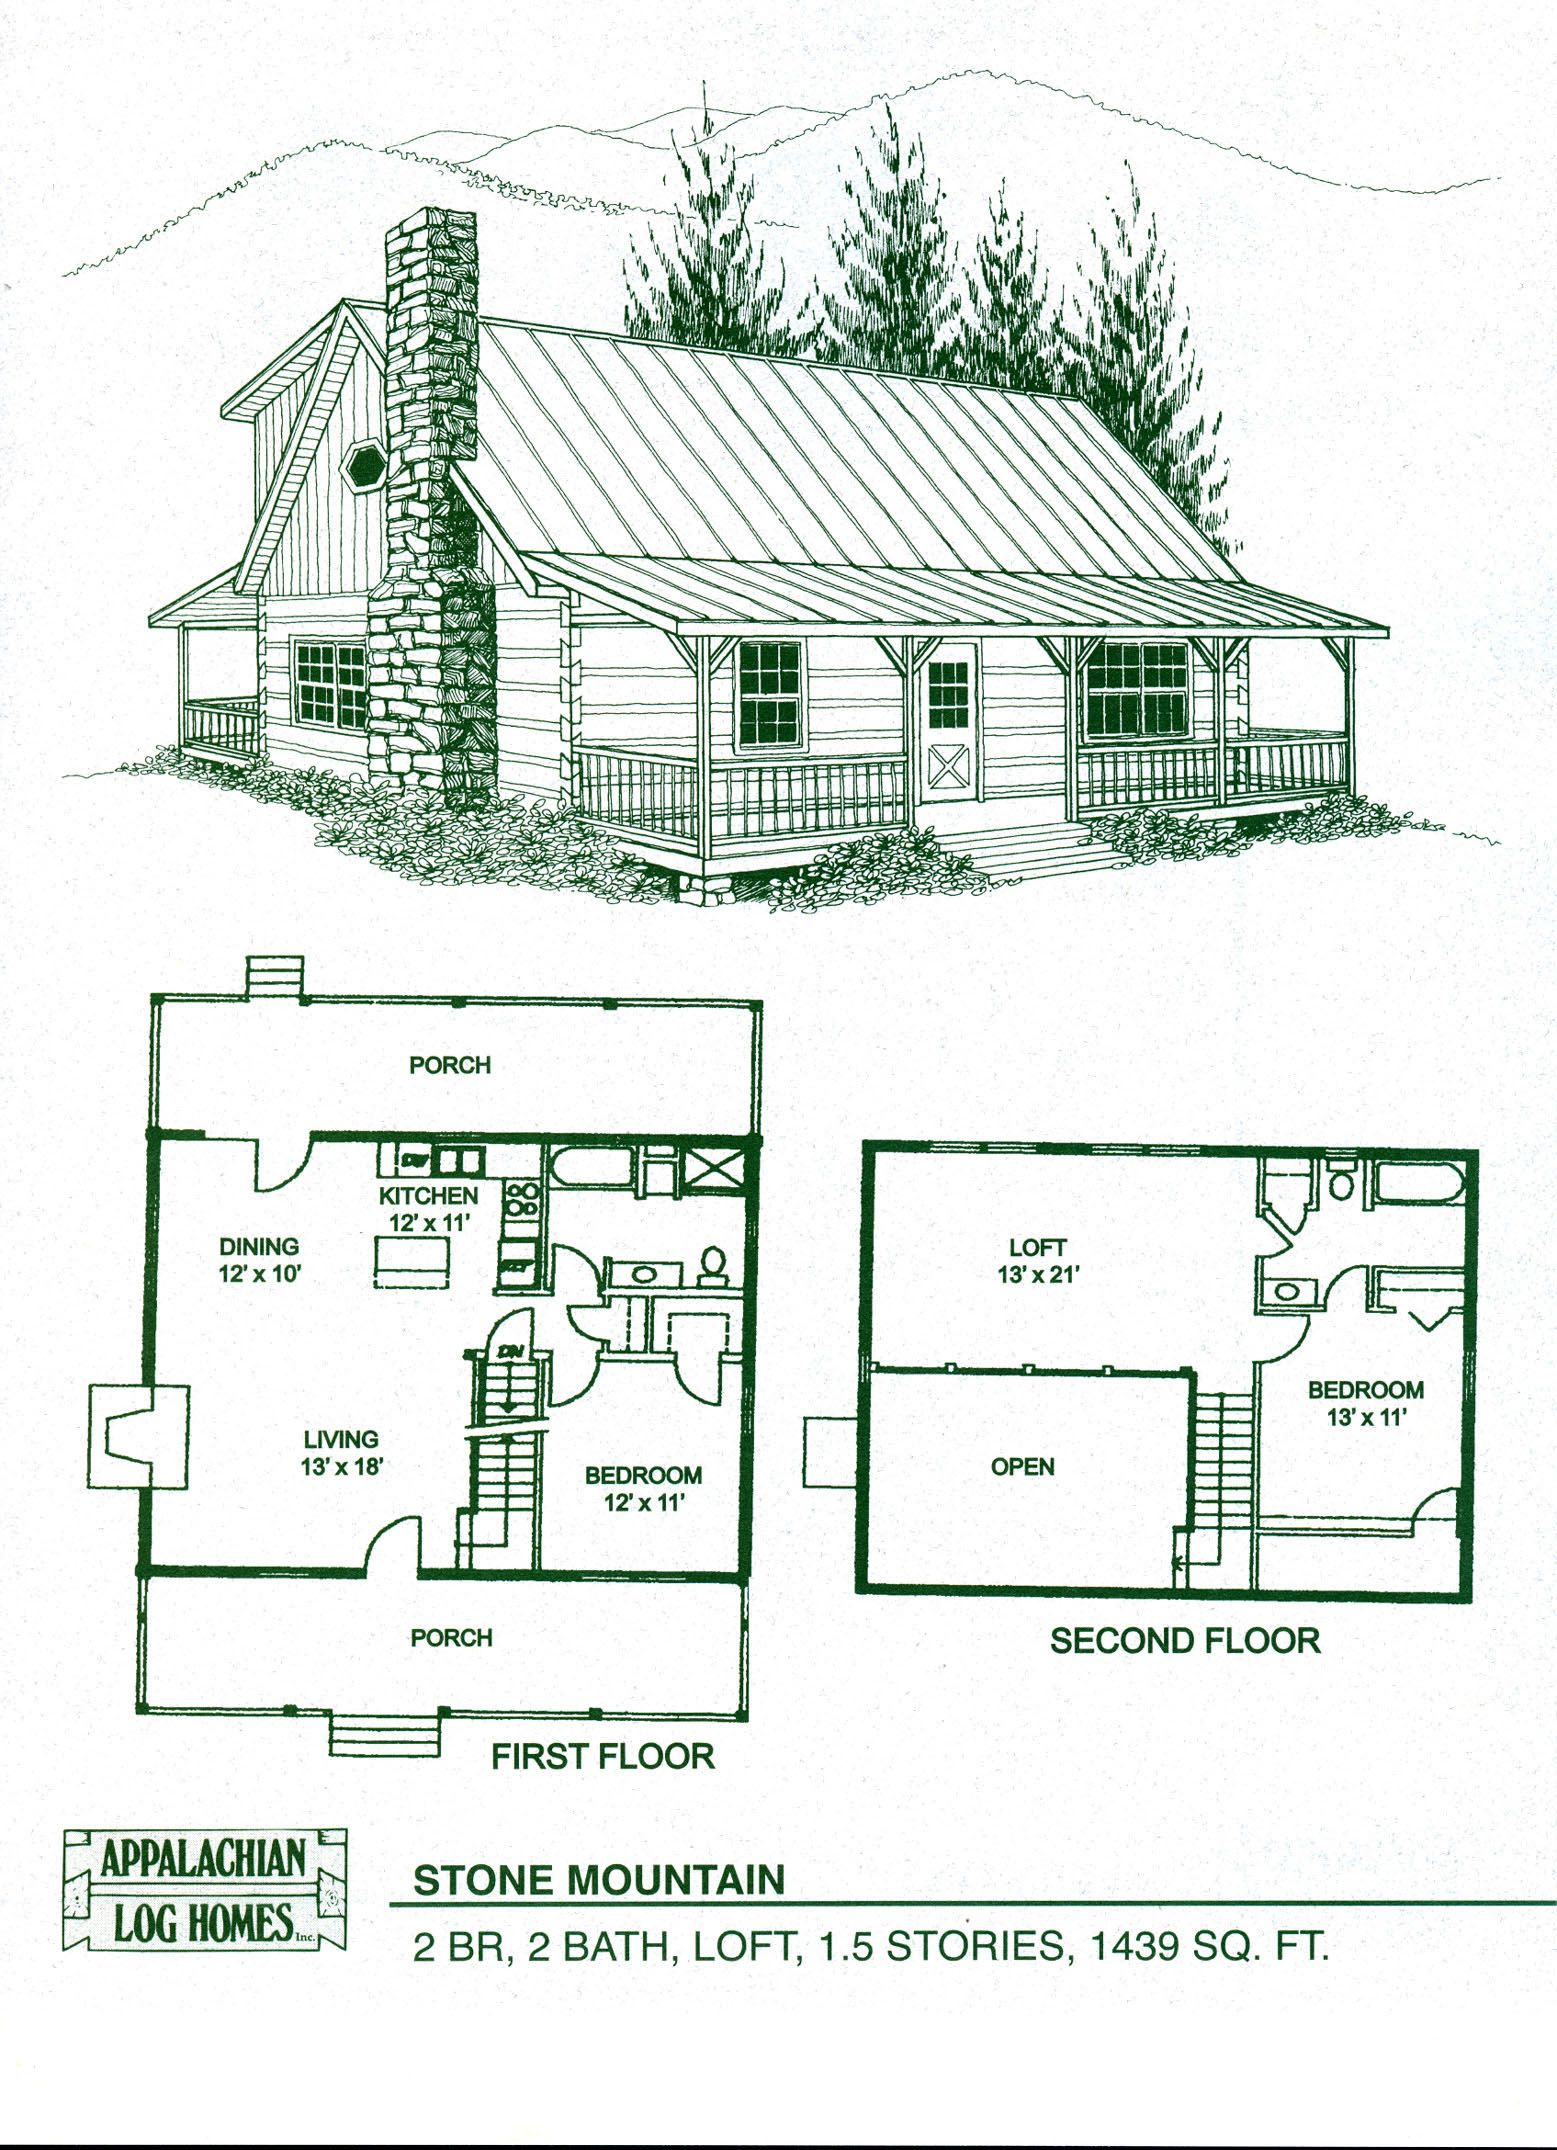 cabin home plans with loft | Log Home Floor Plans - Log Cabin Kits ...